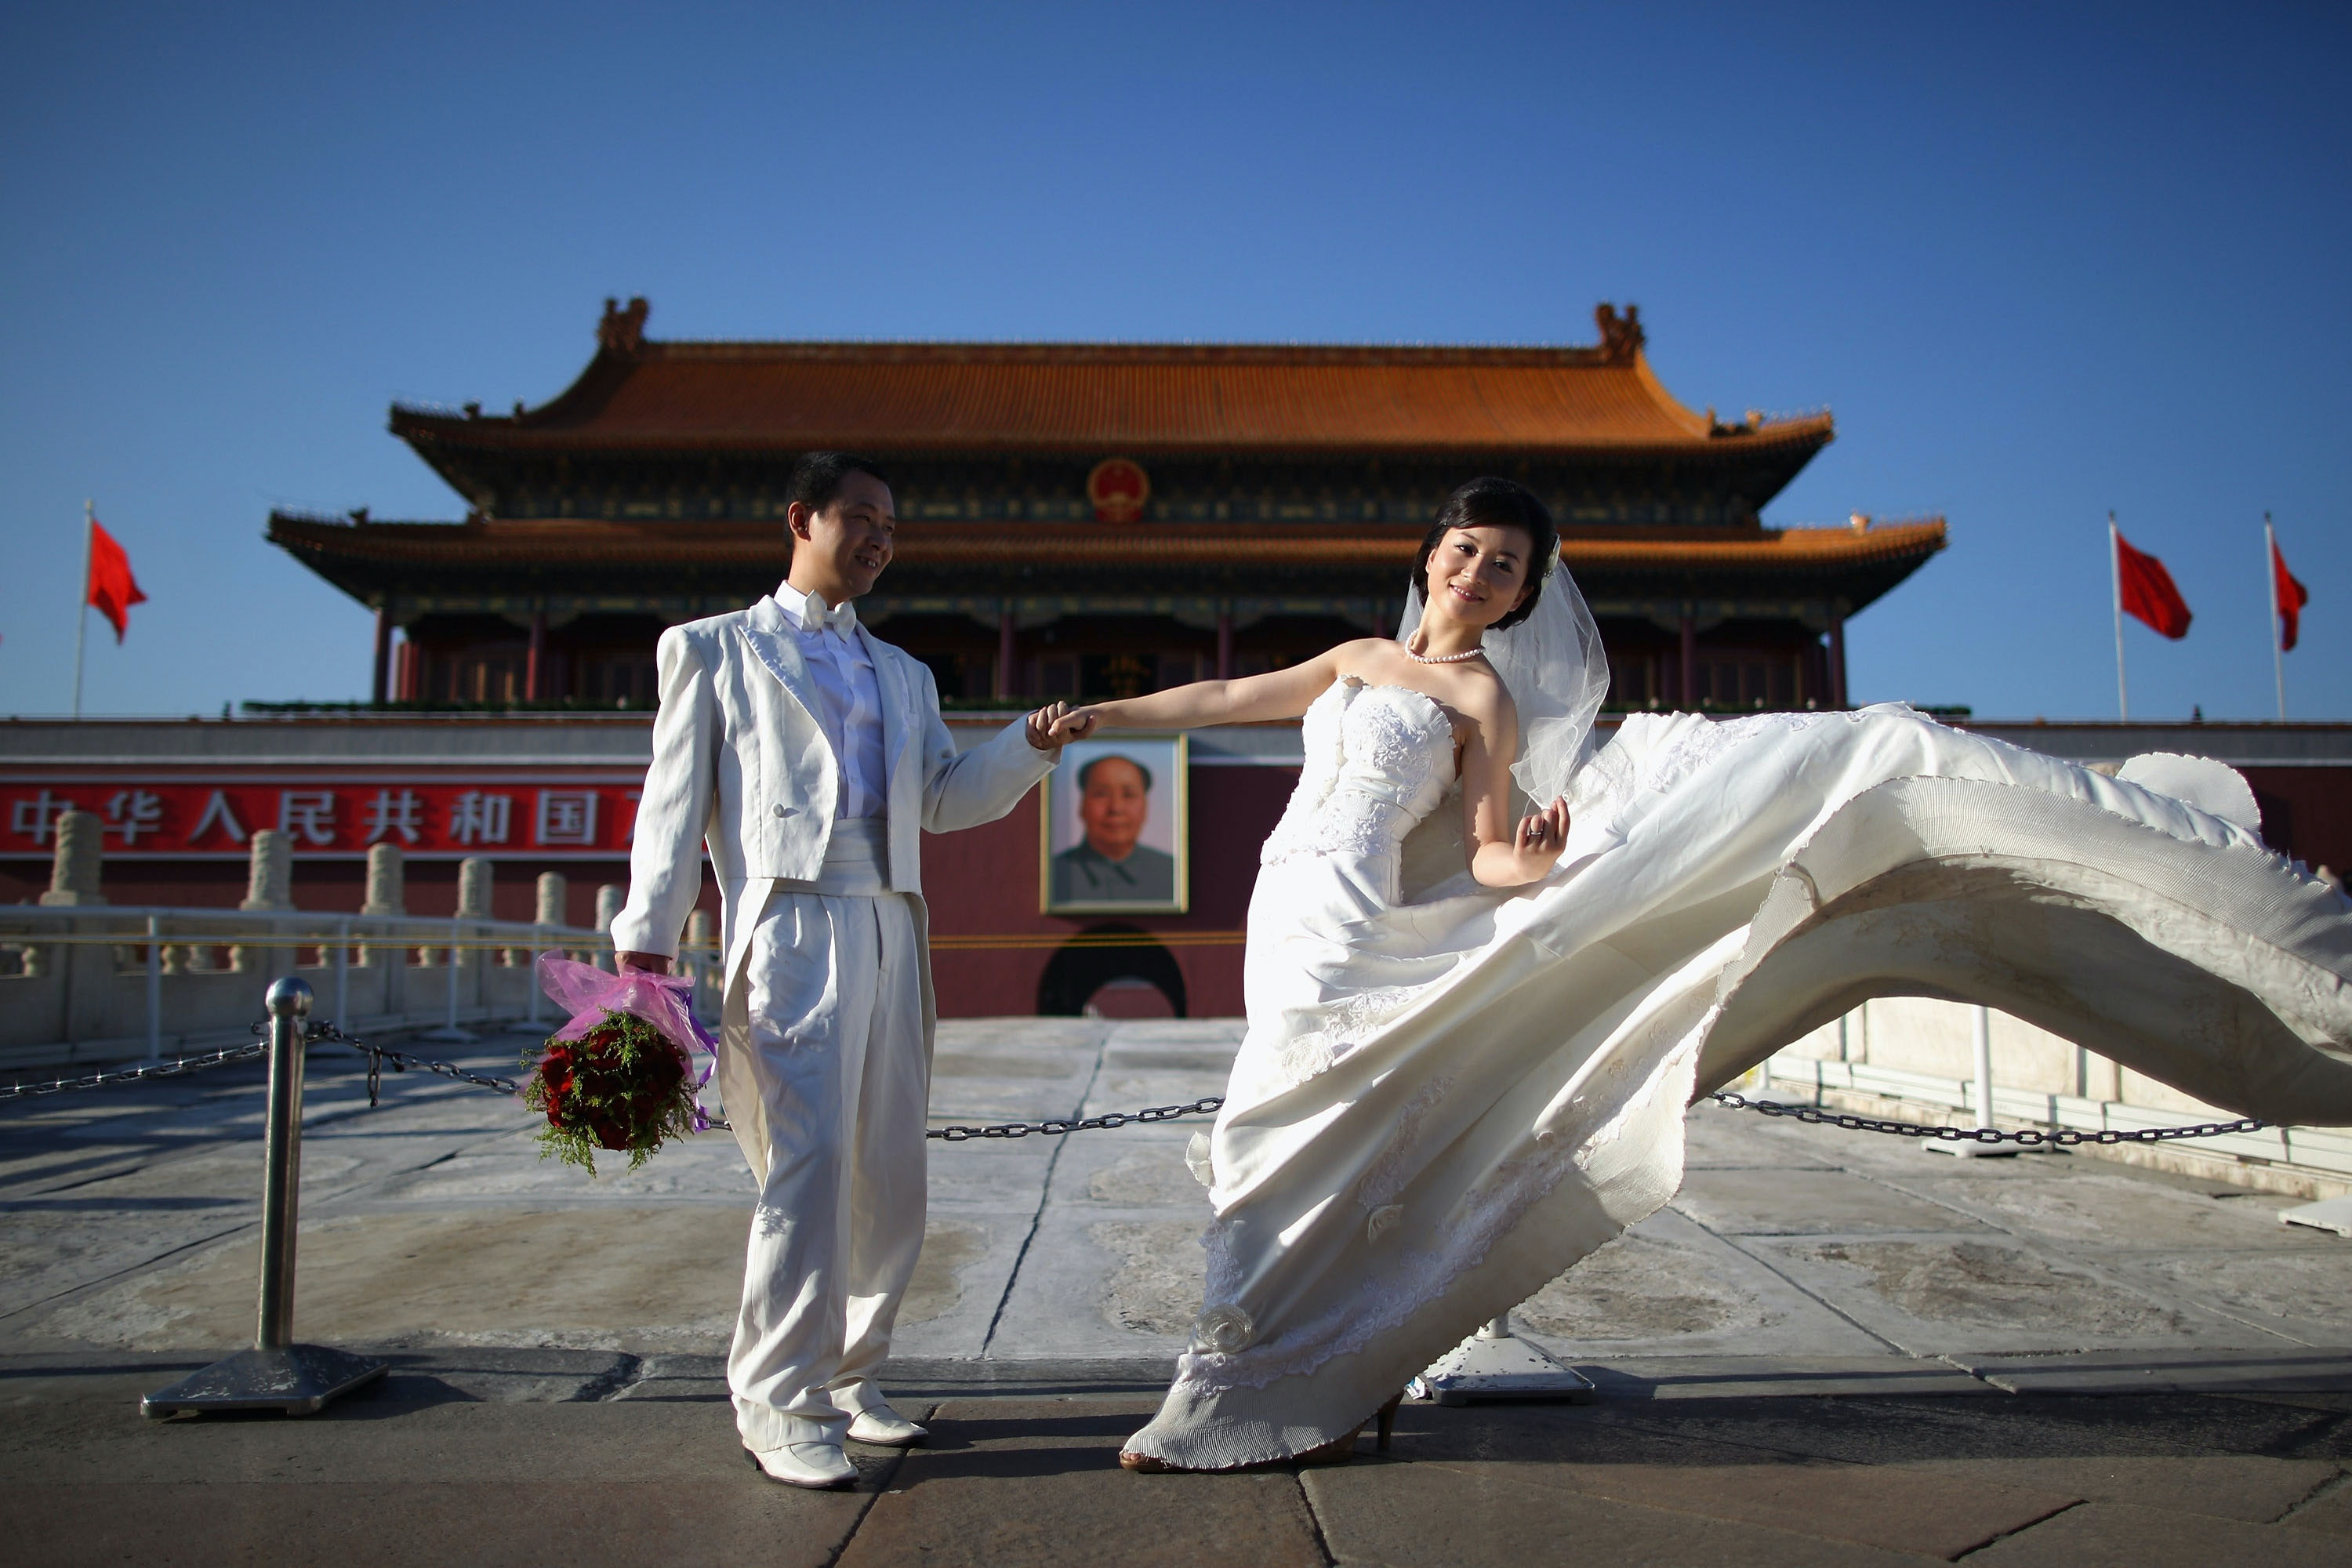 Chinese dating site grooms pay model